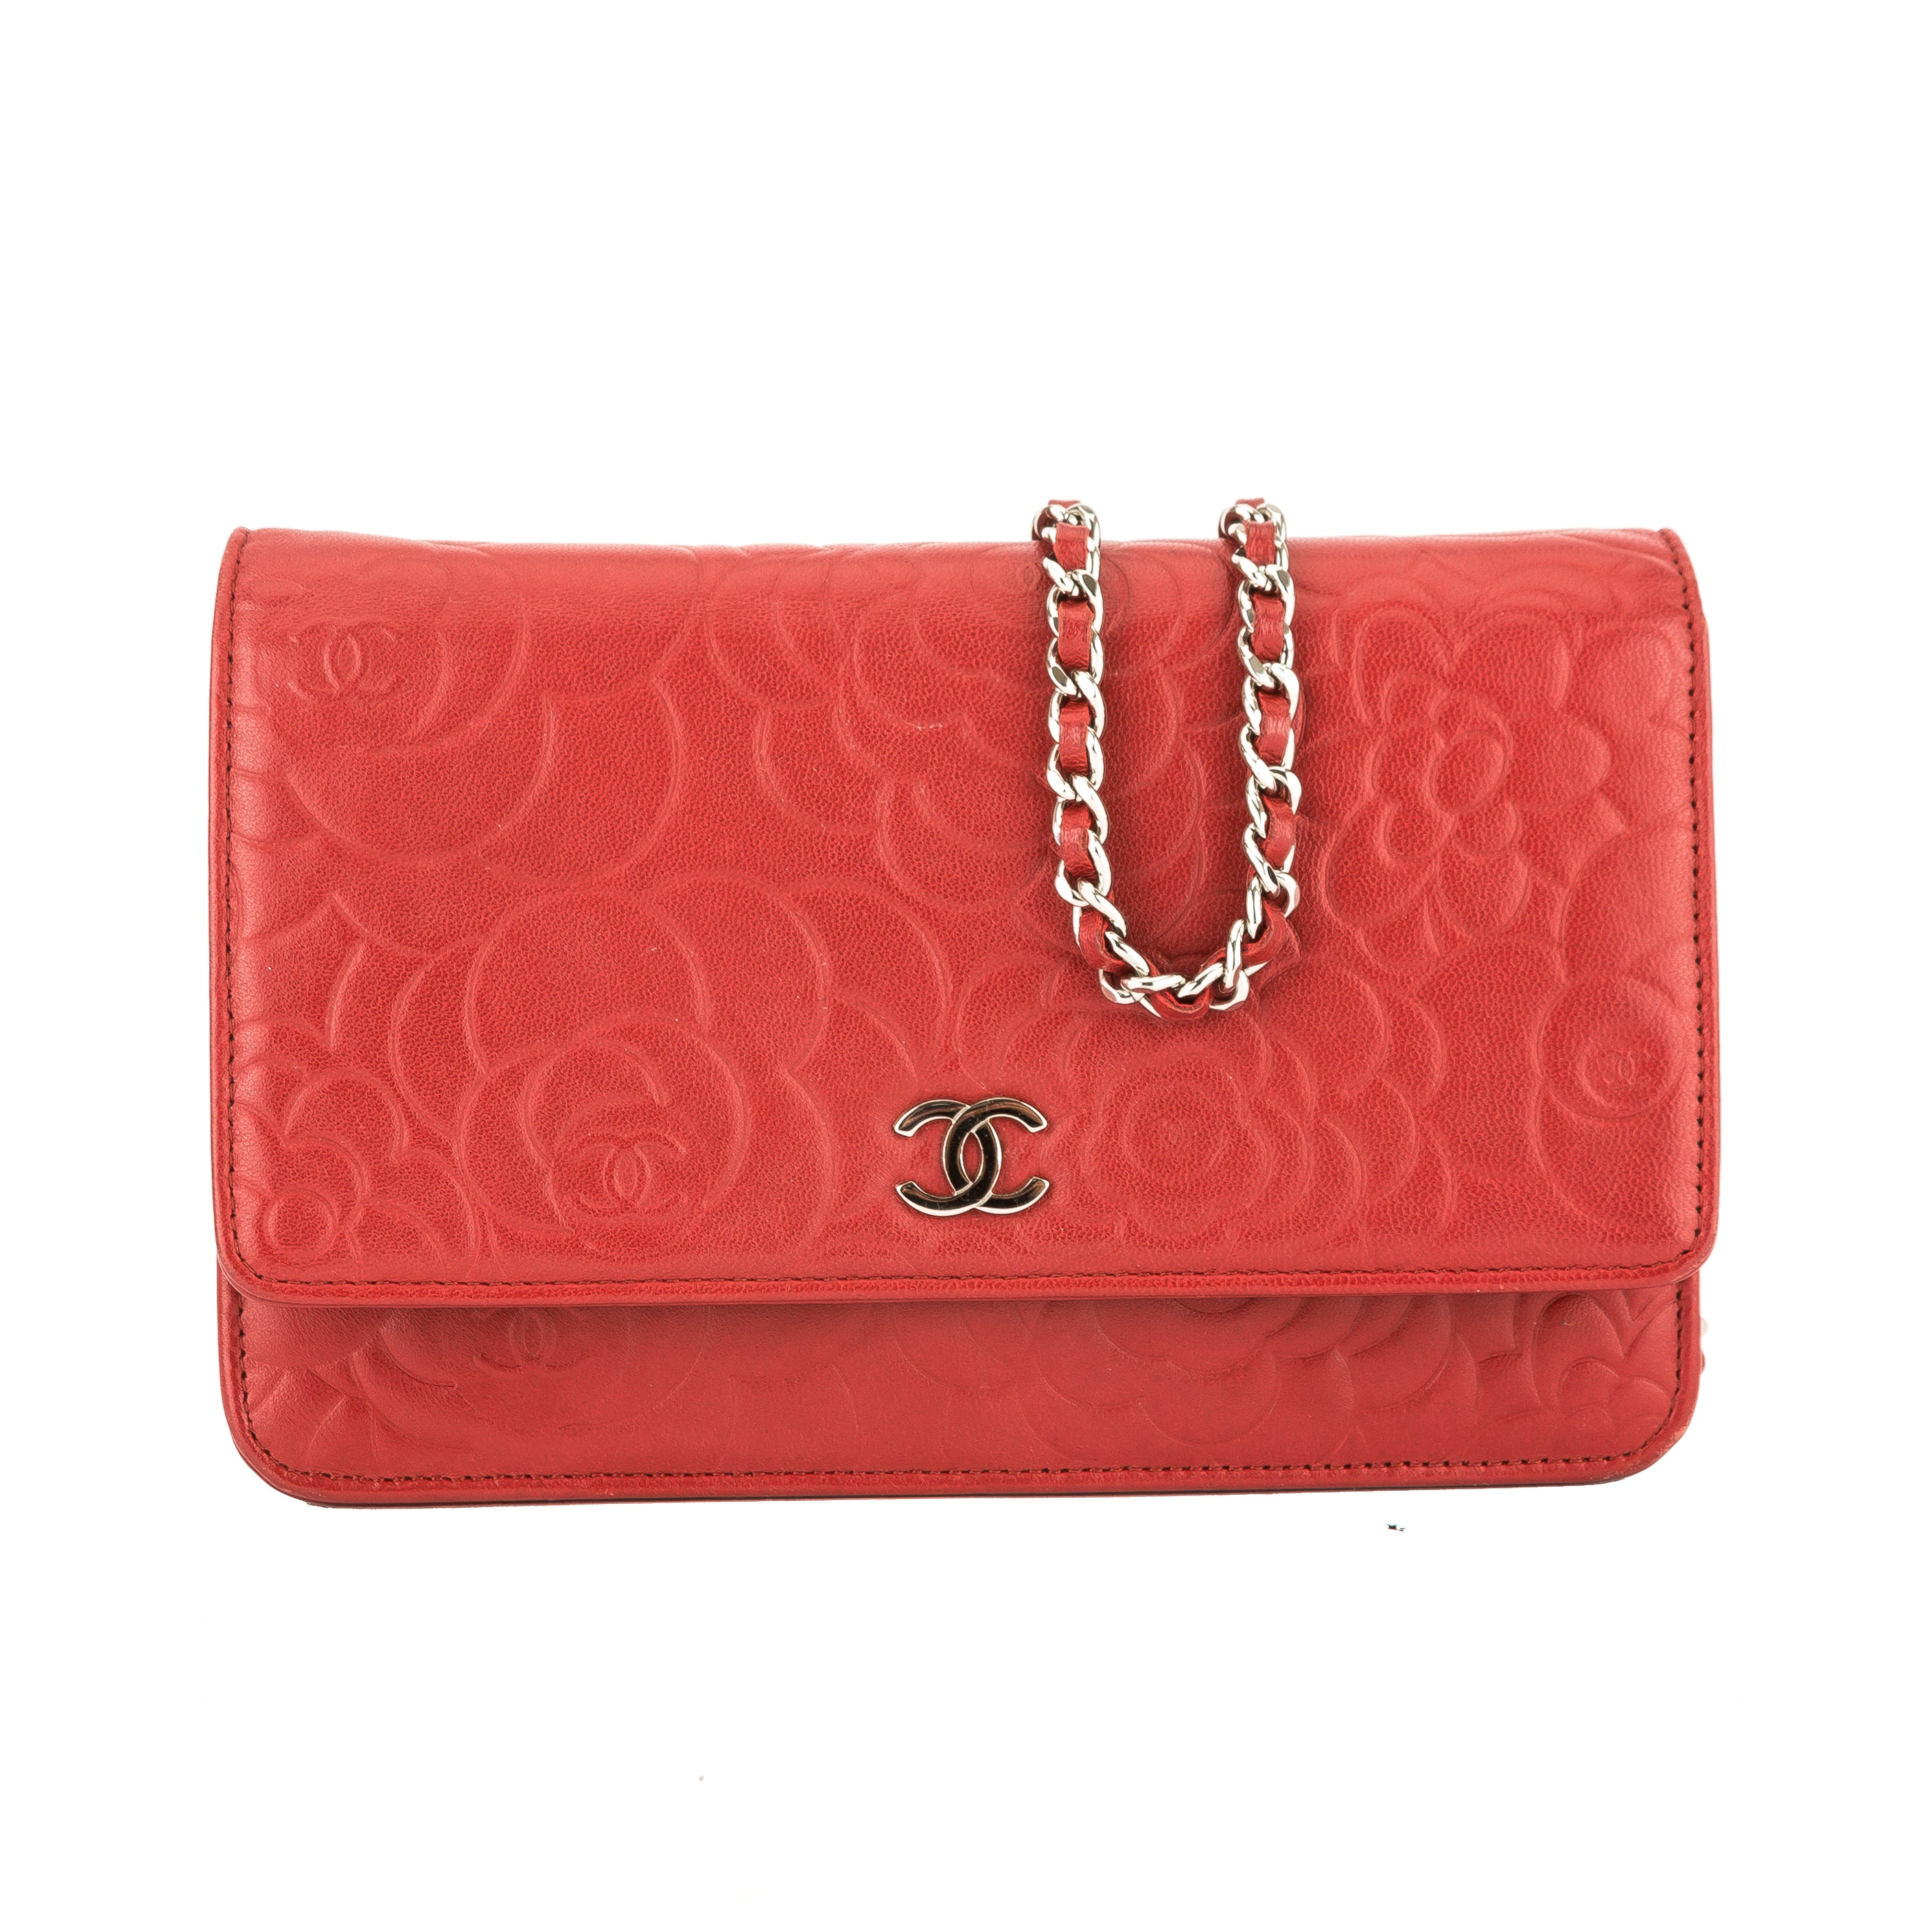 039c9665f68e79 Chanel Red Lambskin Leather Camellia Wallet On Chain WOC (3829010 ...